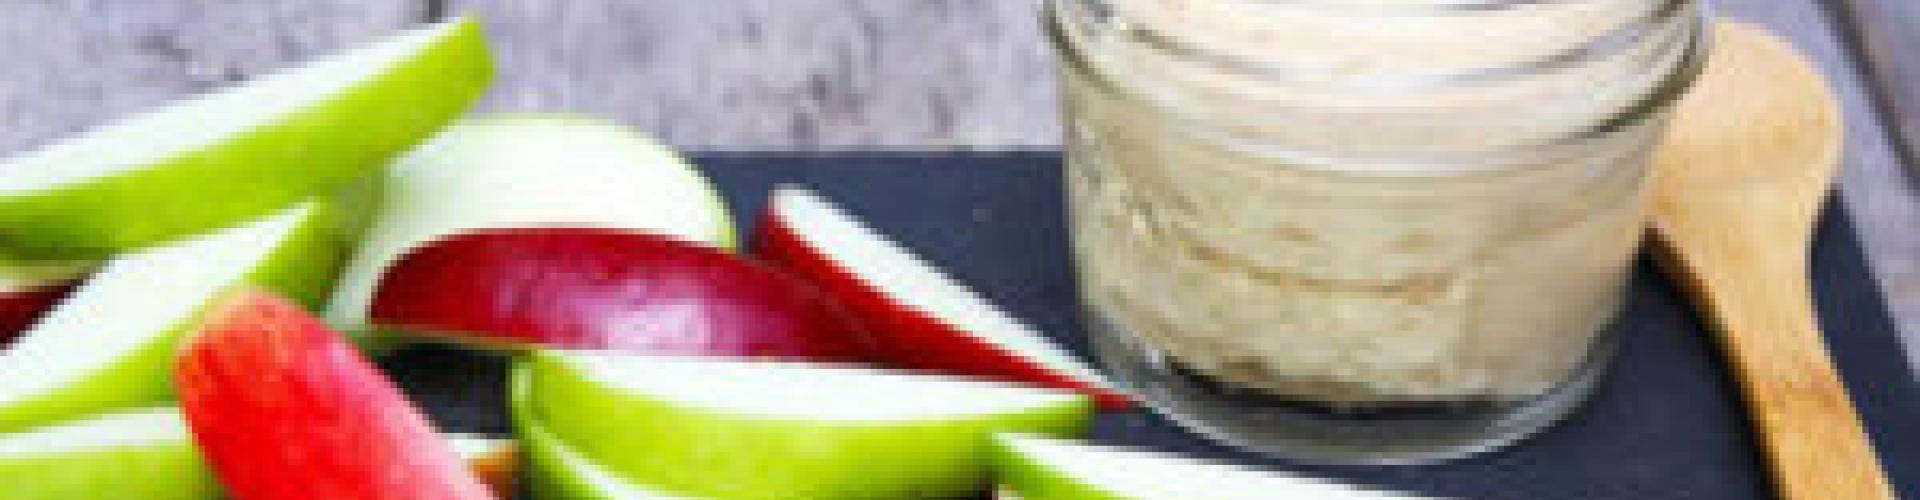 3 Healthy Recipes for After-School Snacks